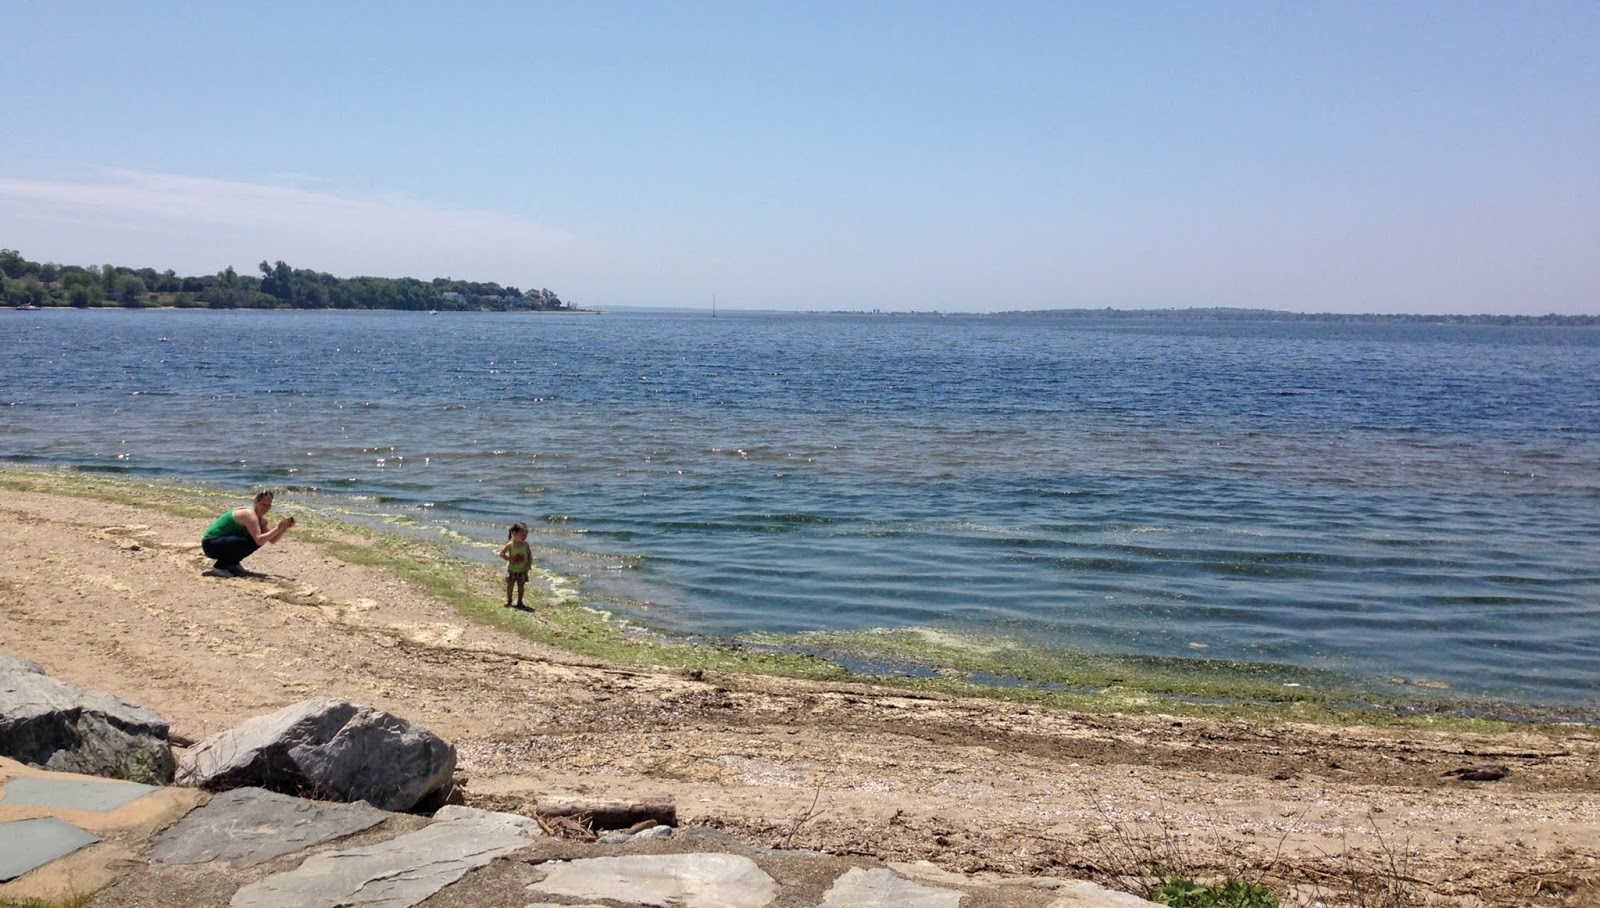 Algae blooms, caused by excessive nutrients in the water, can be seen along the shores at Sabin Point.